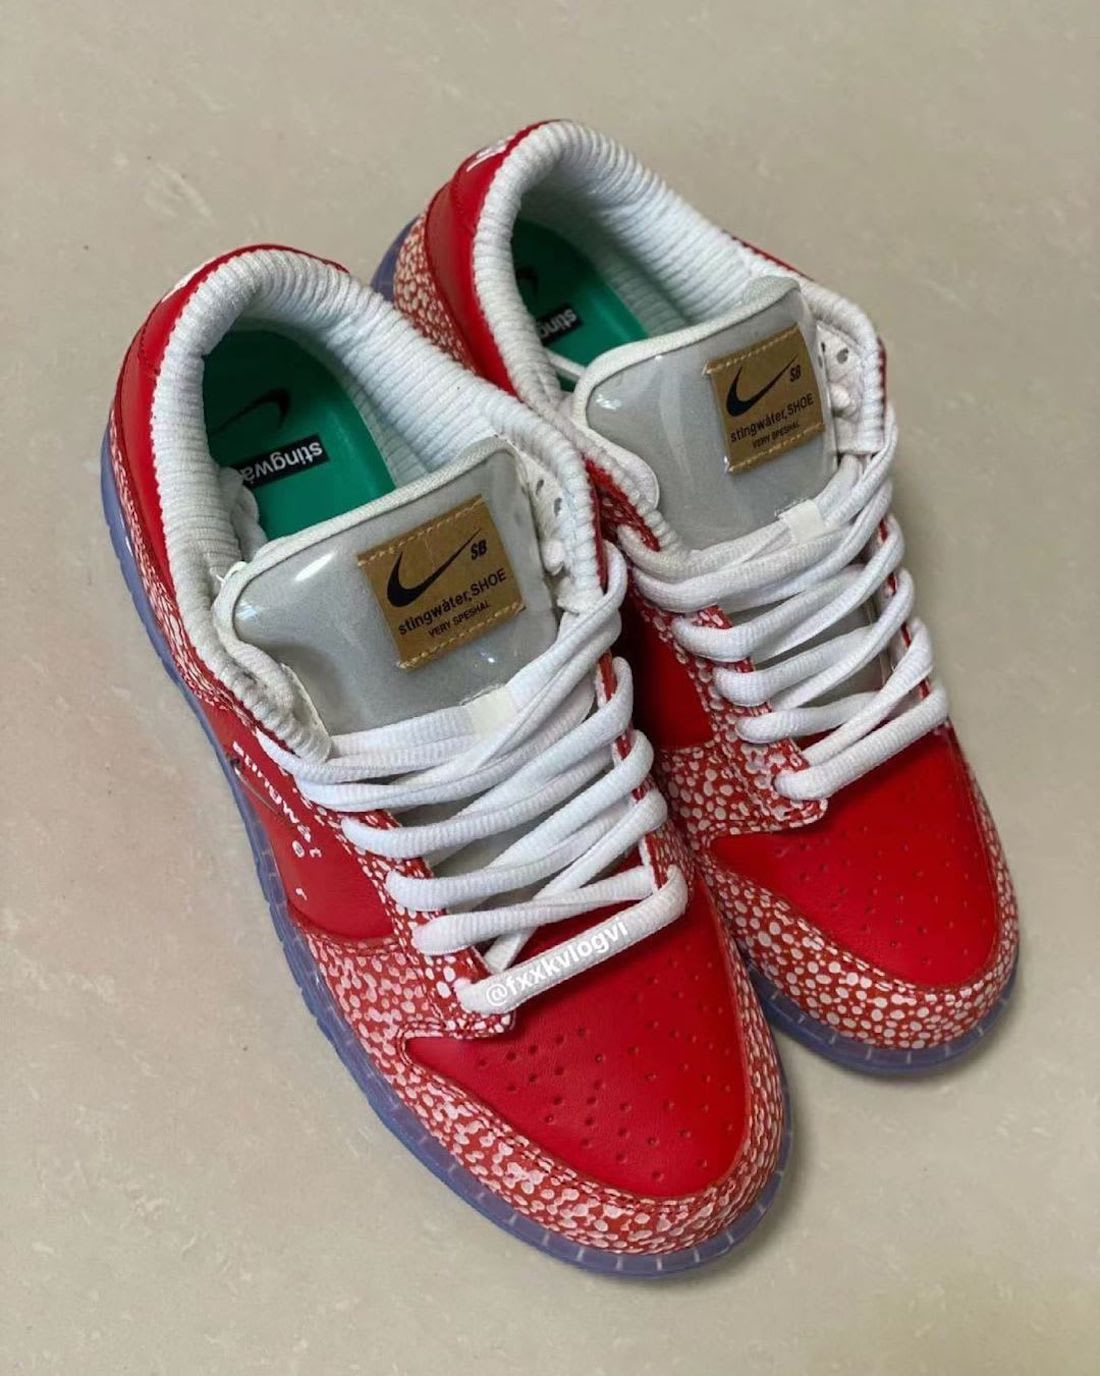 Stingwater Nike SB Dunk Low Release Date